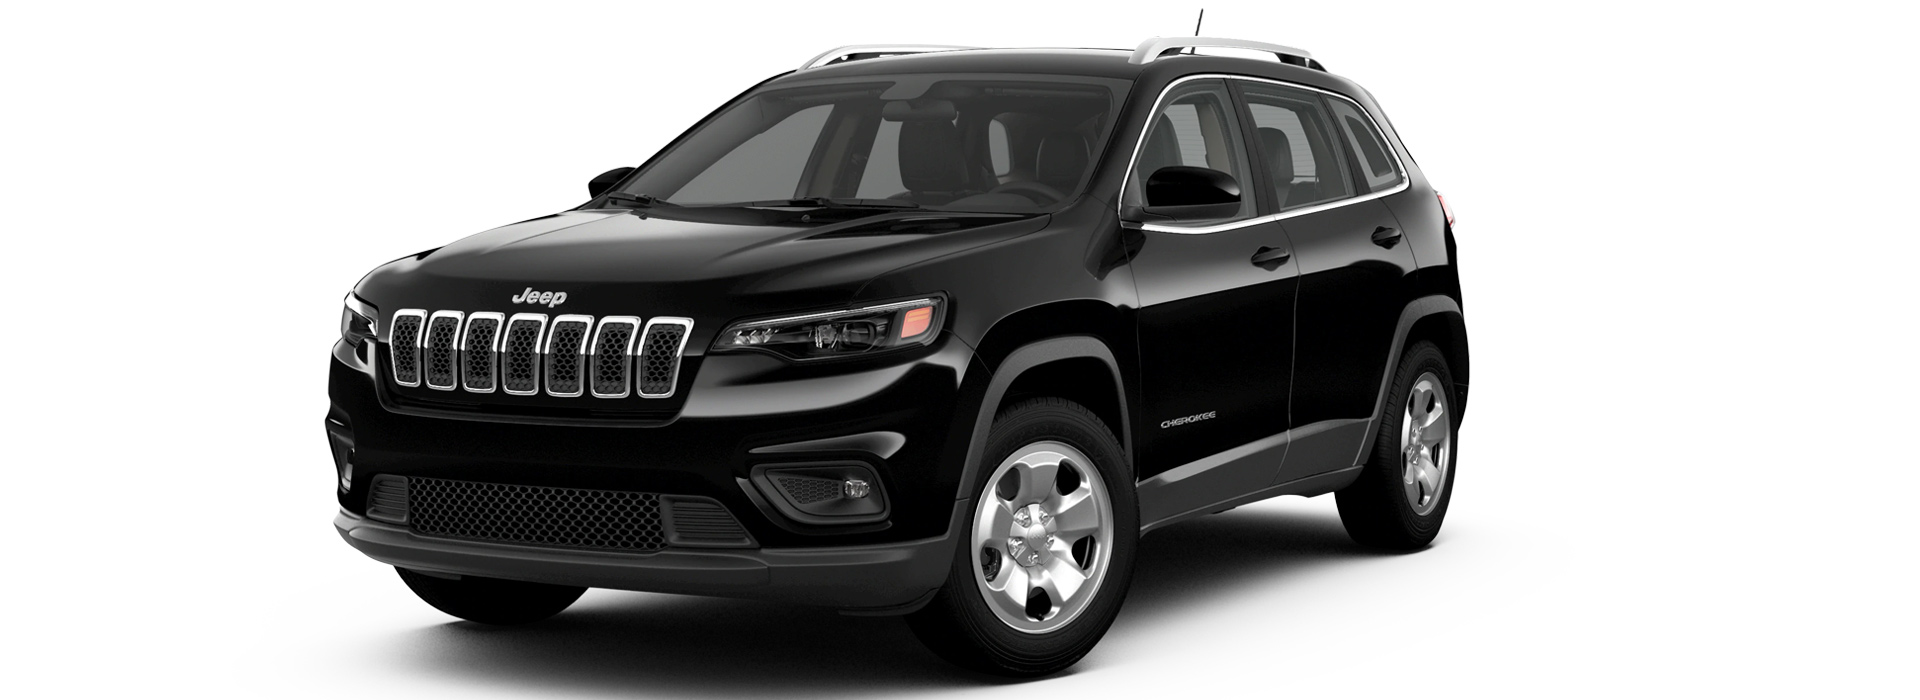 Jeep Cherokee for sale in Warrenton Virginia